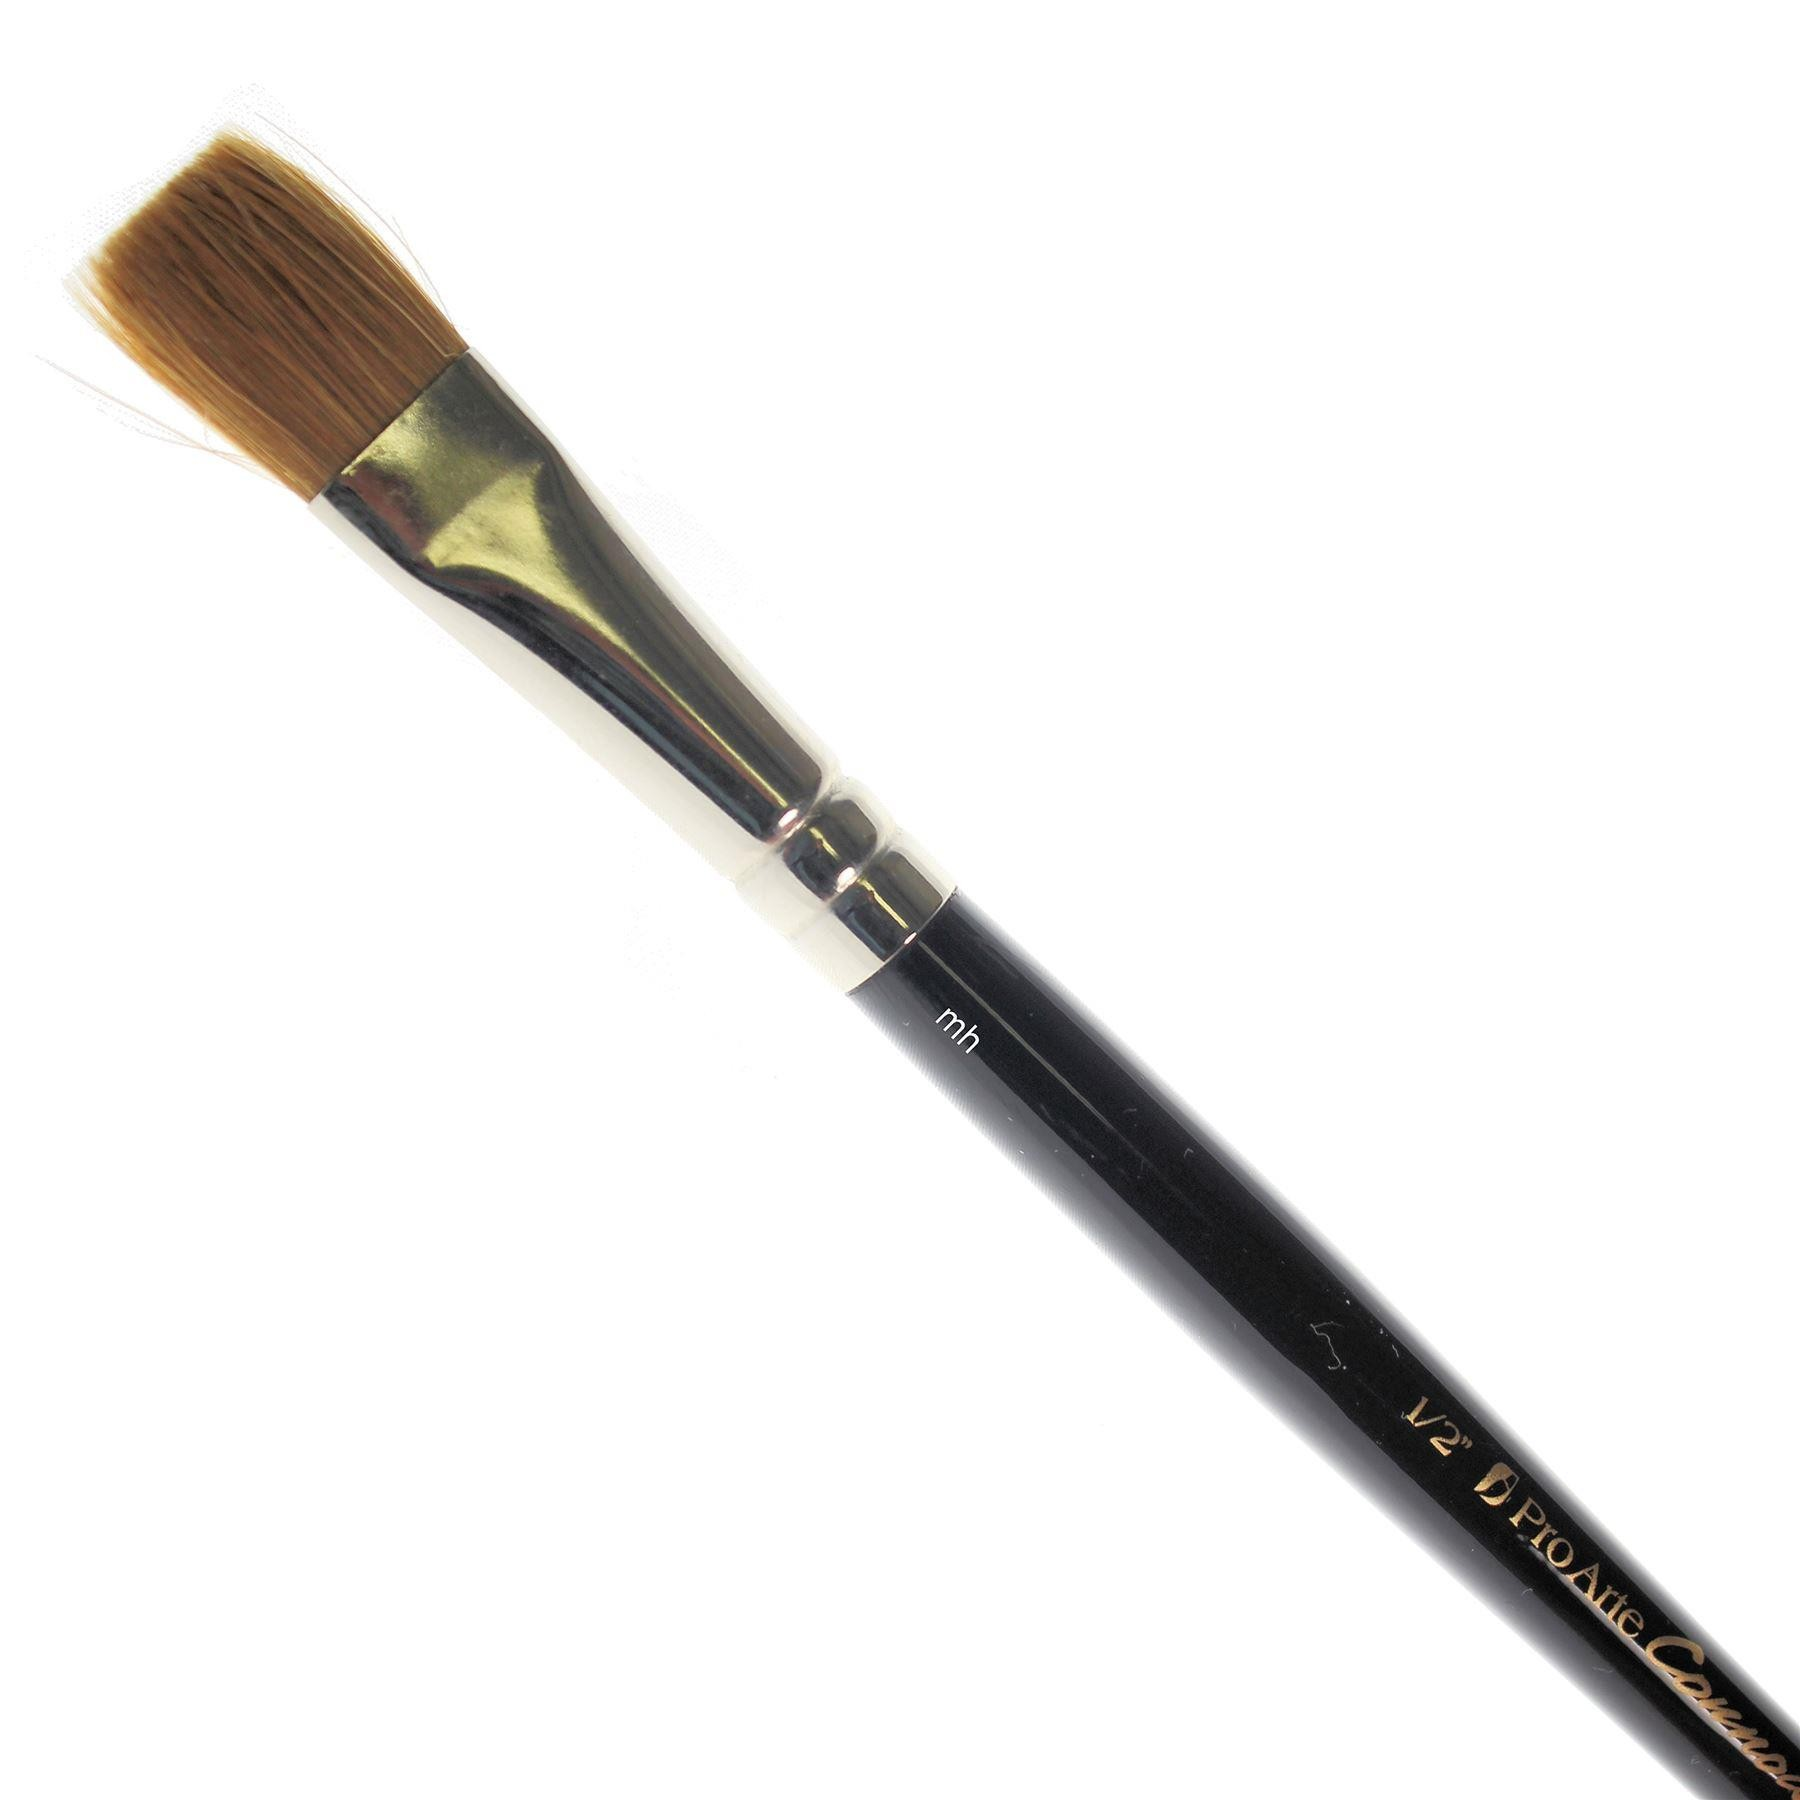 Pro Arte series 99 one stroke brush